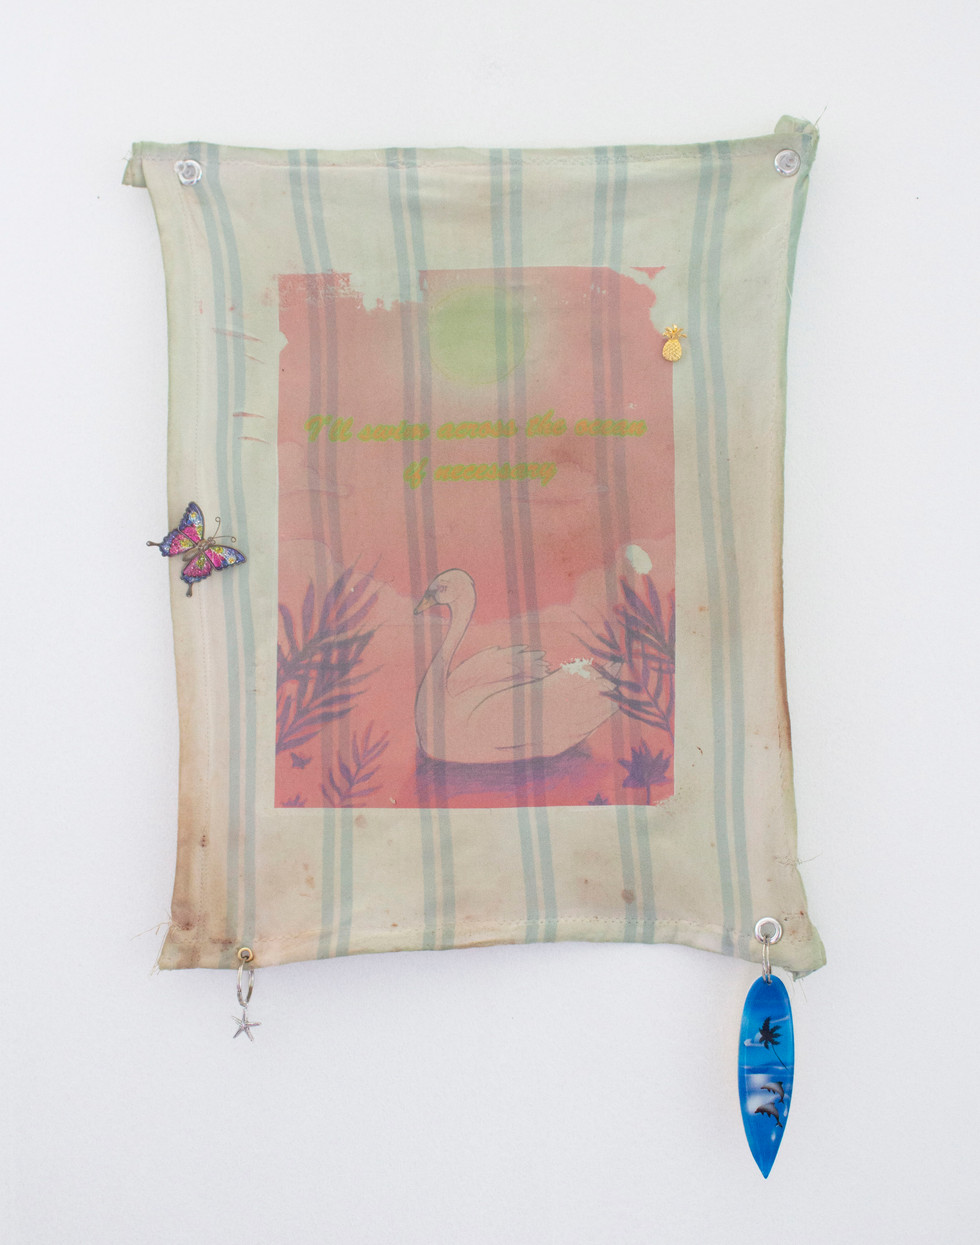 Untitled small fabric banner 2 (I'll swim across the ocean if necessary)